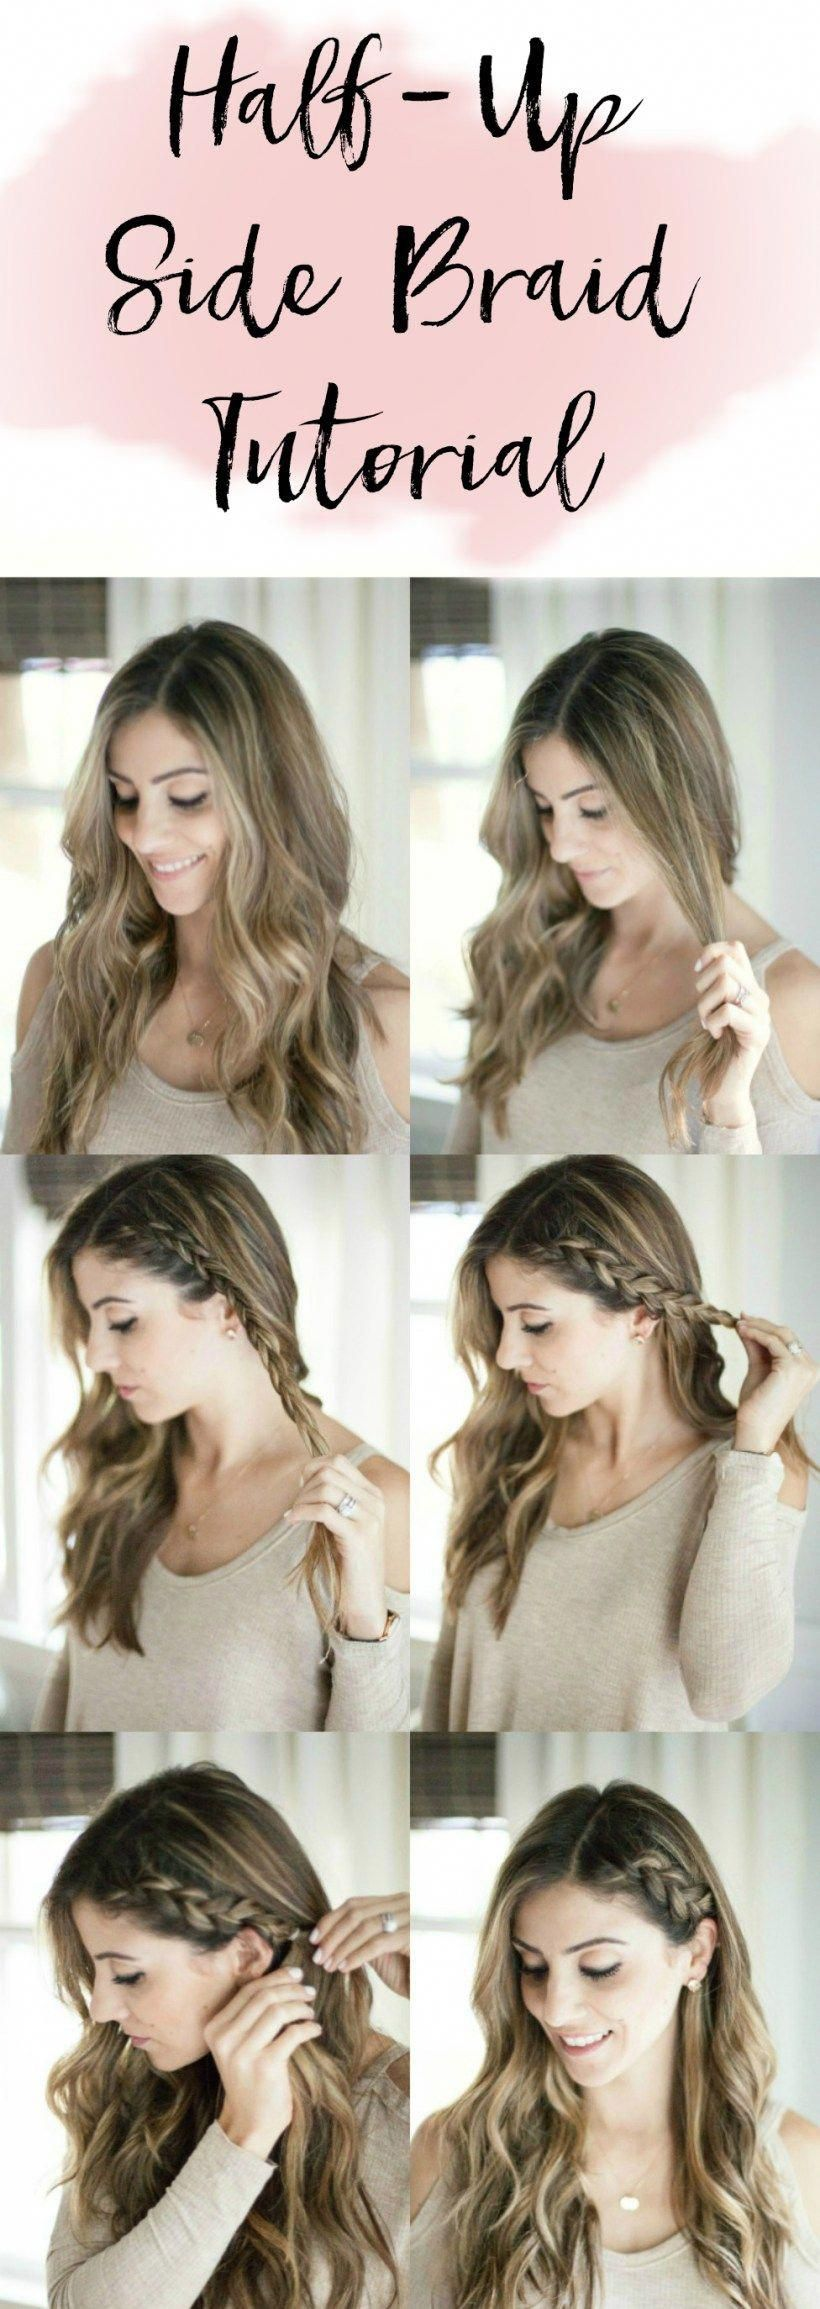 A Simple Half Up Side Braid Hair Tutorial Perfect For Adding A Little Elegance To Your Normal Hair Style Hair Styles Side Braid Hairstyles Medium Hair Styles